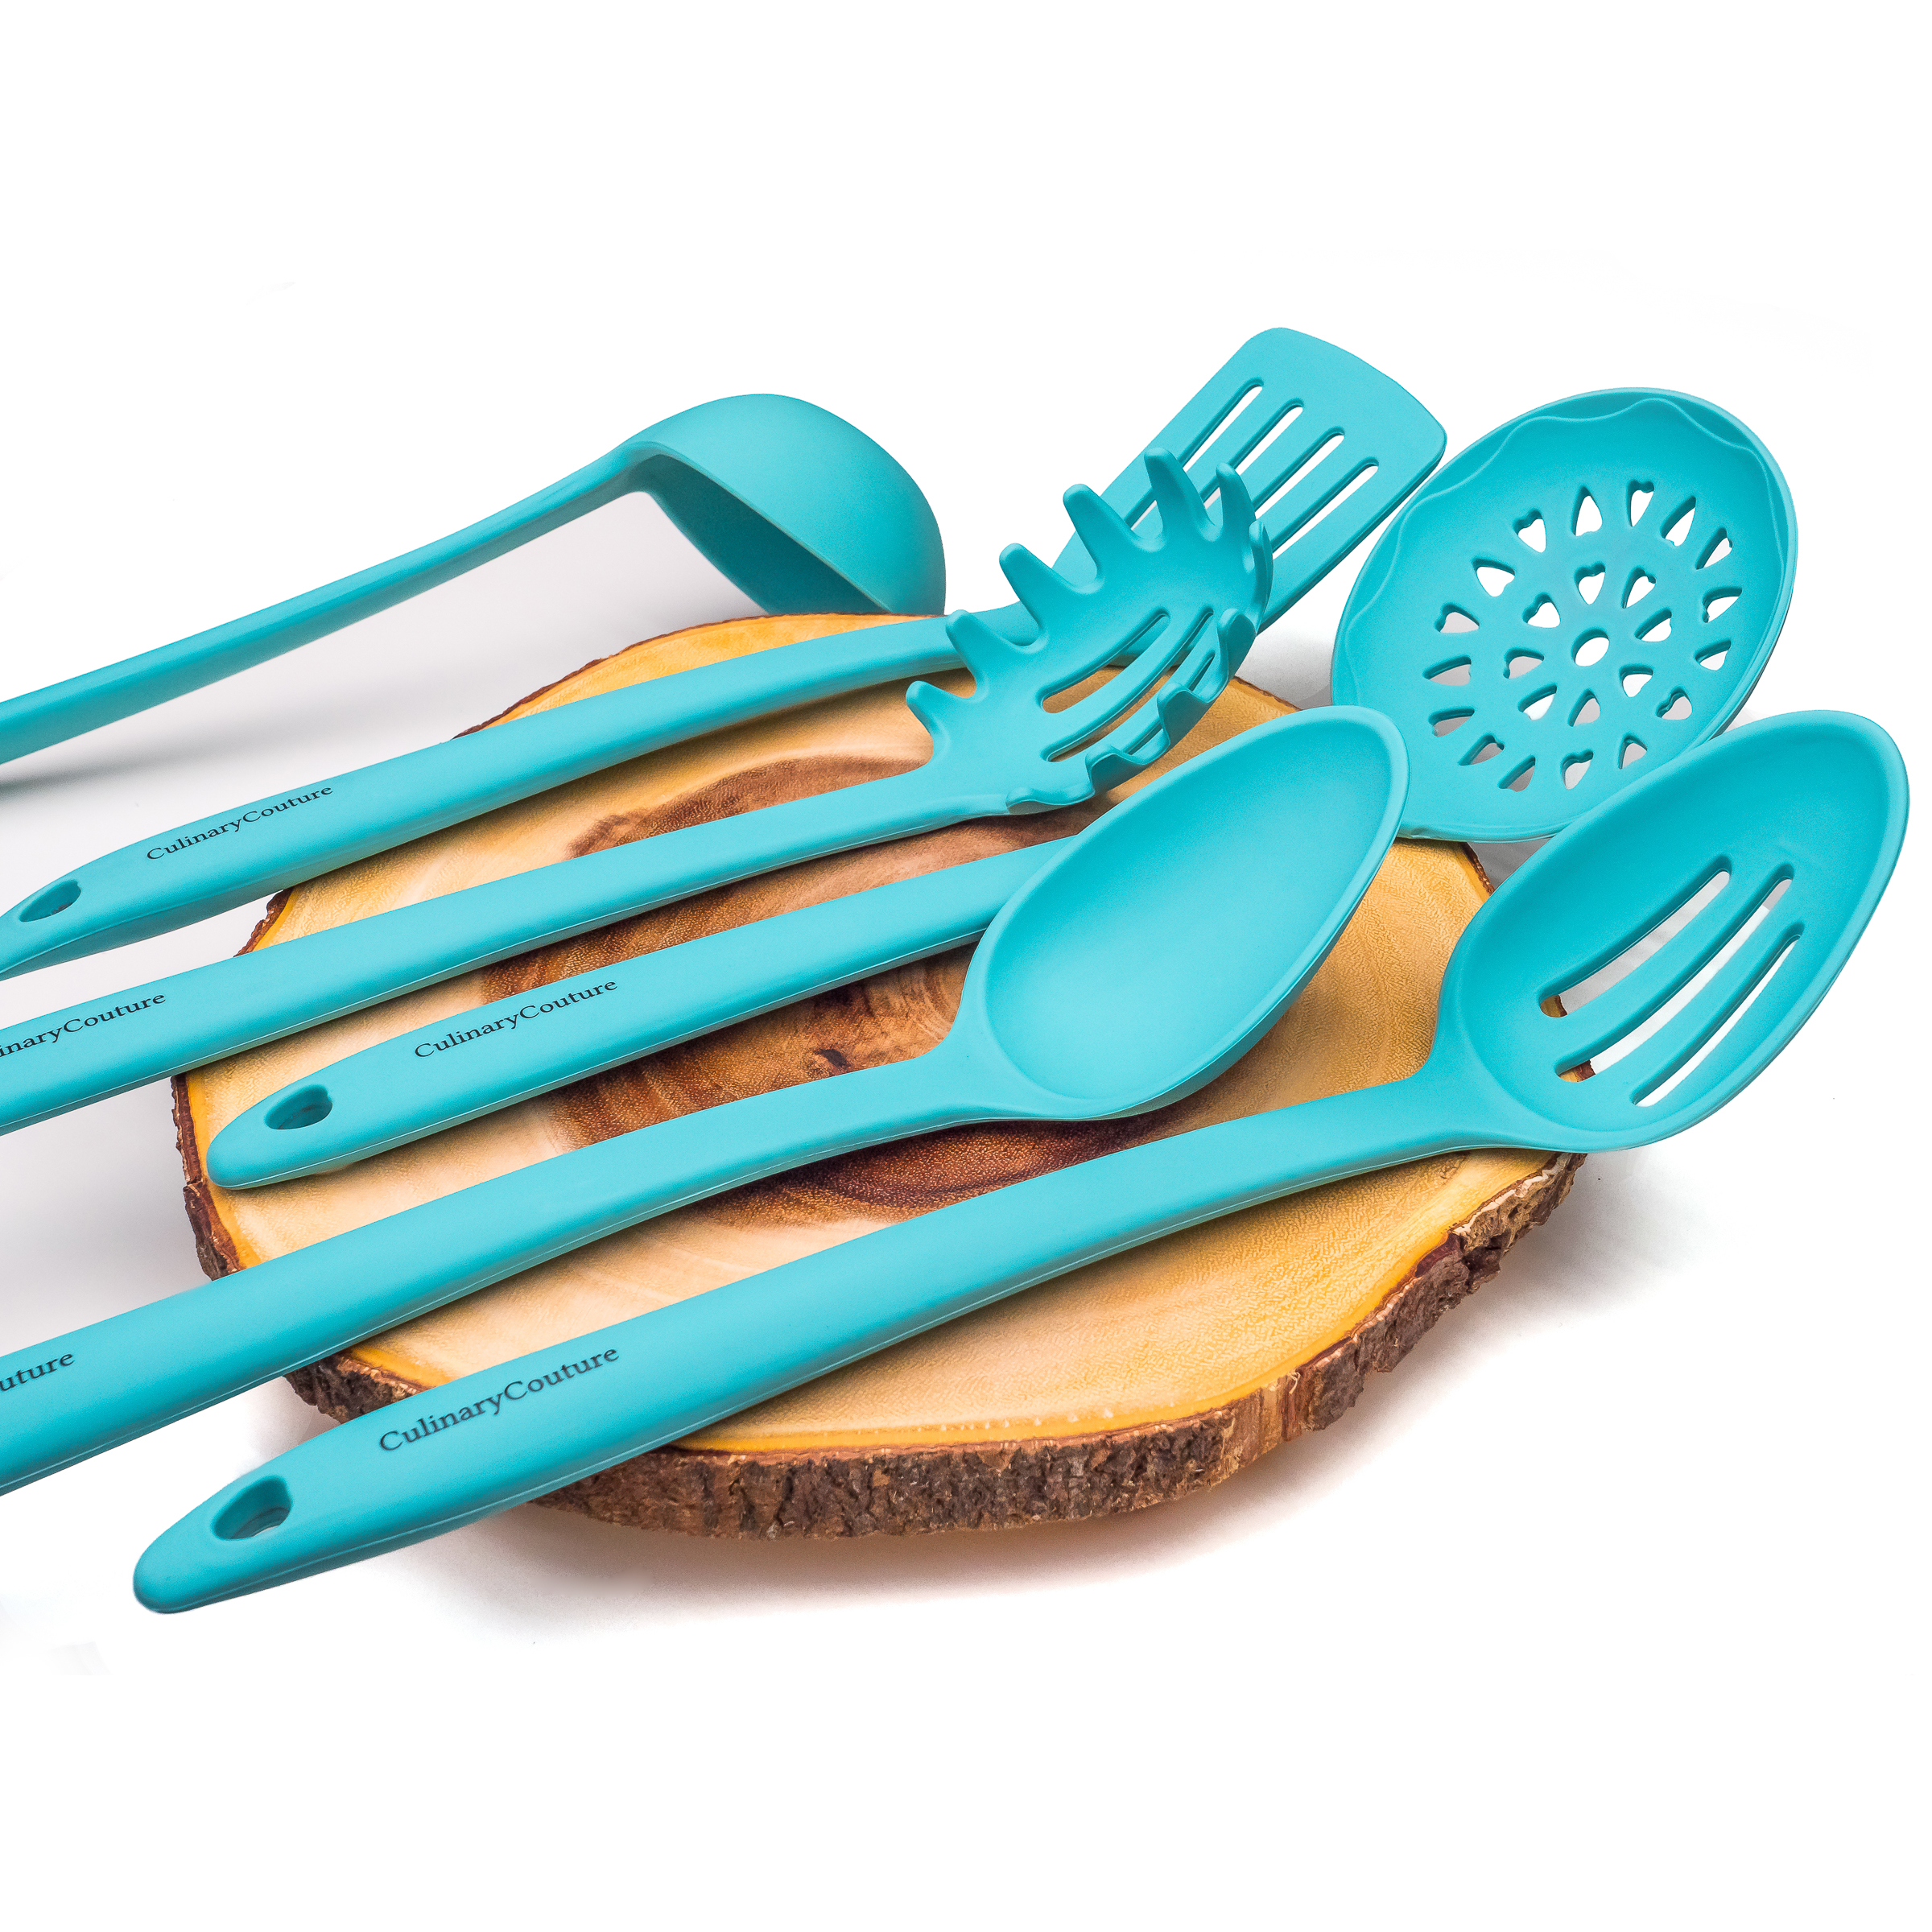 Aqua Sky Cooking Tools Set